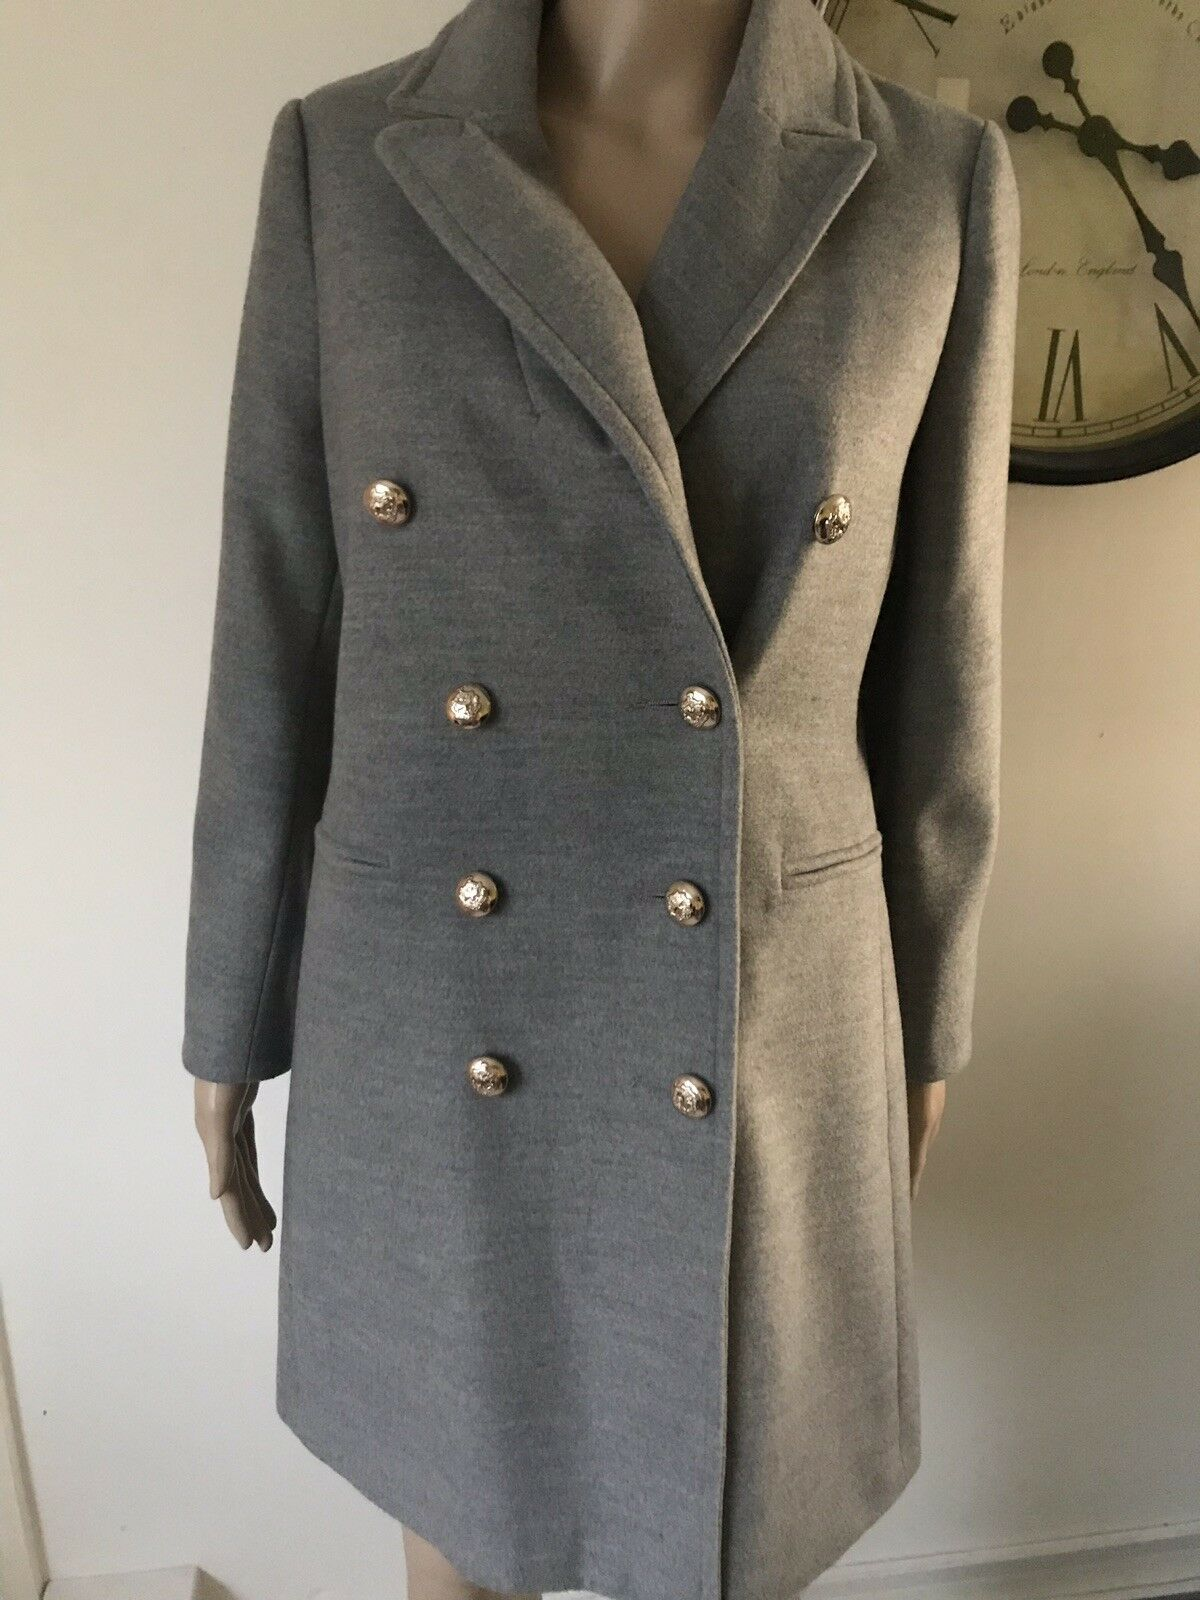 Topshop Double Breasted Gold Look Buttons Coat in grau UK 10 EU 38 US 6